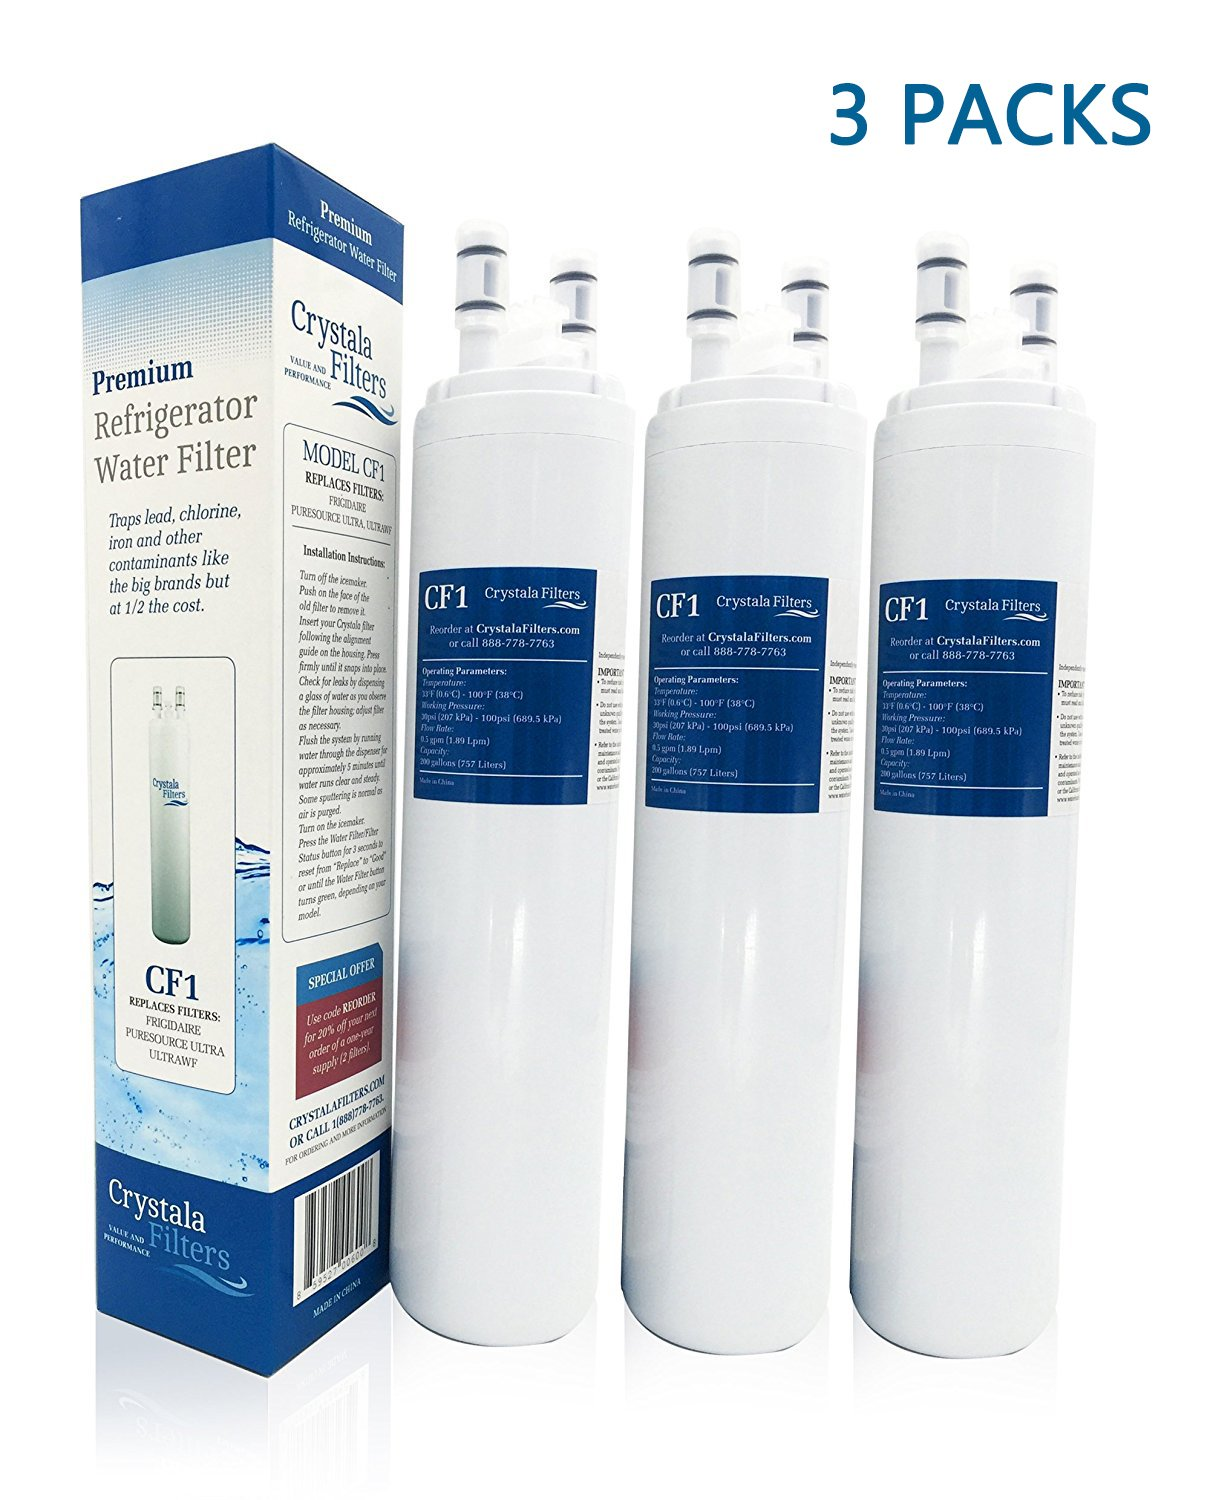 Crystala Filters Water Filter - Compatible Cartridge For ULTRAWF Frigidaire Refrigerators & Ice Makers - Compatible with Puresource, Gallery, Professional Series Fridge and Some Electrolux Models